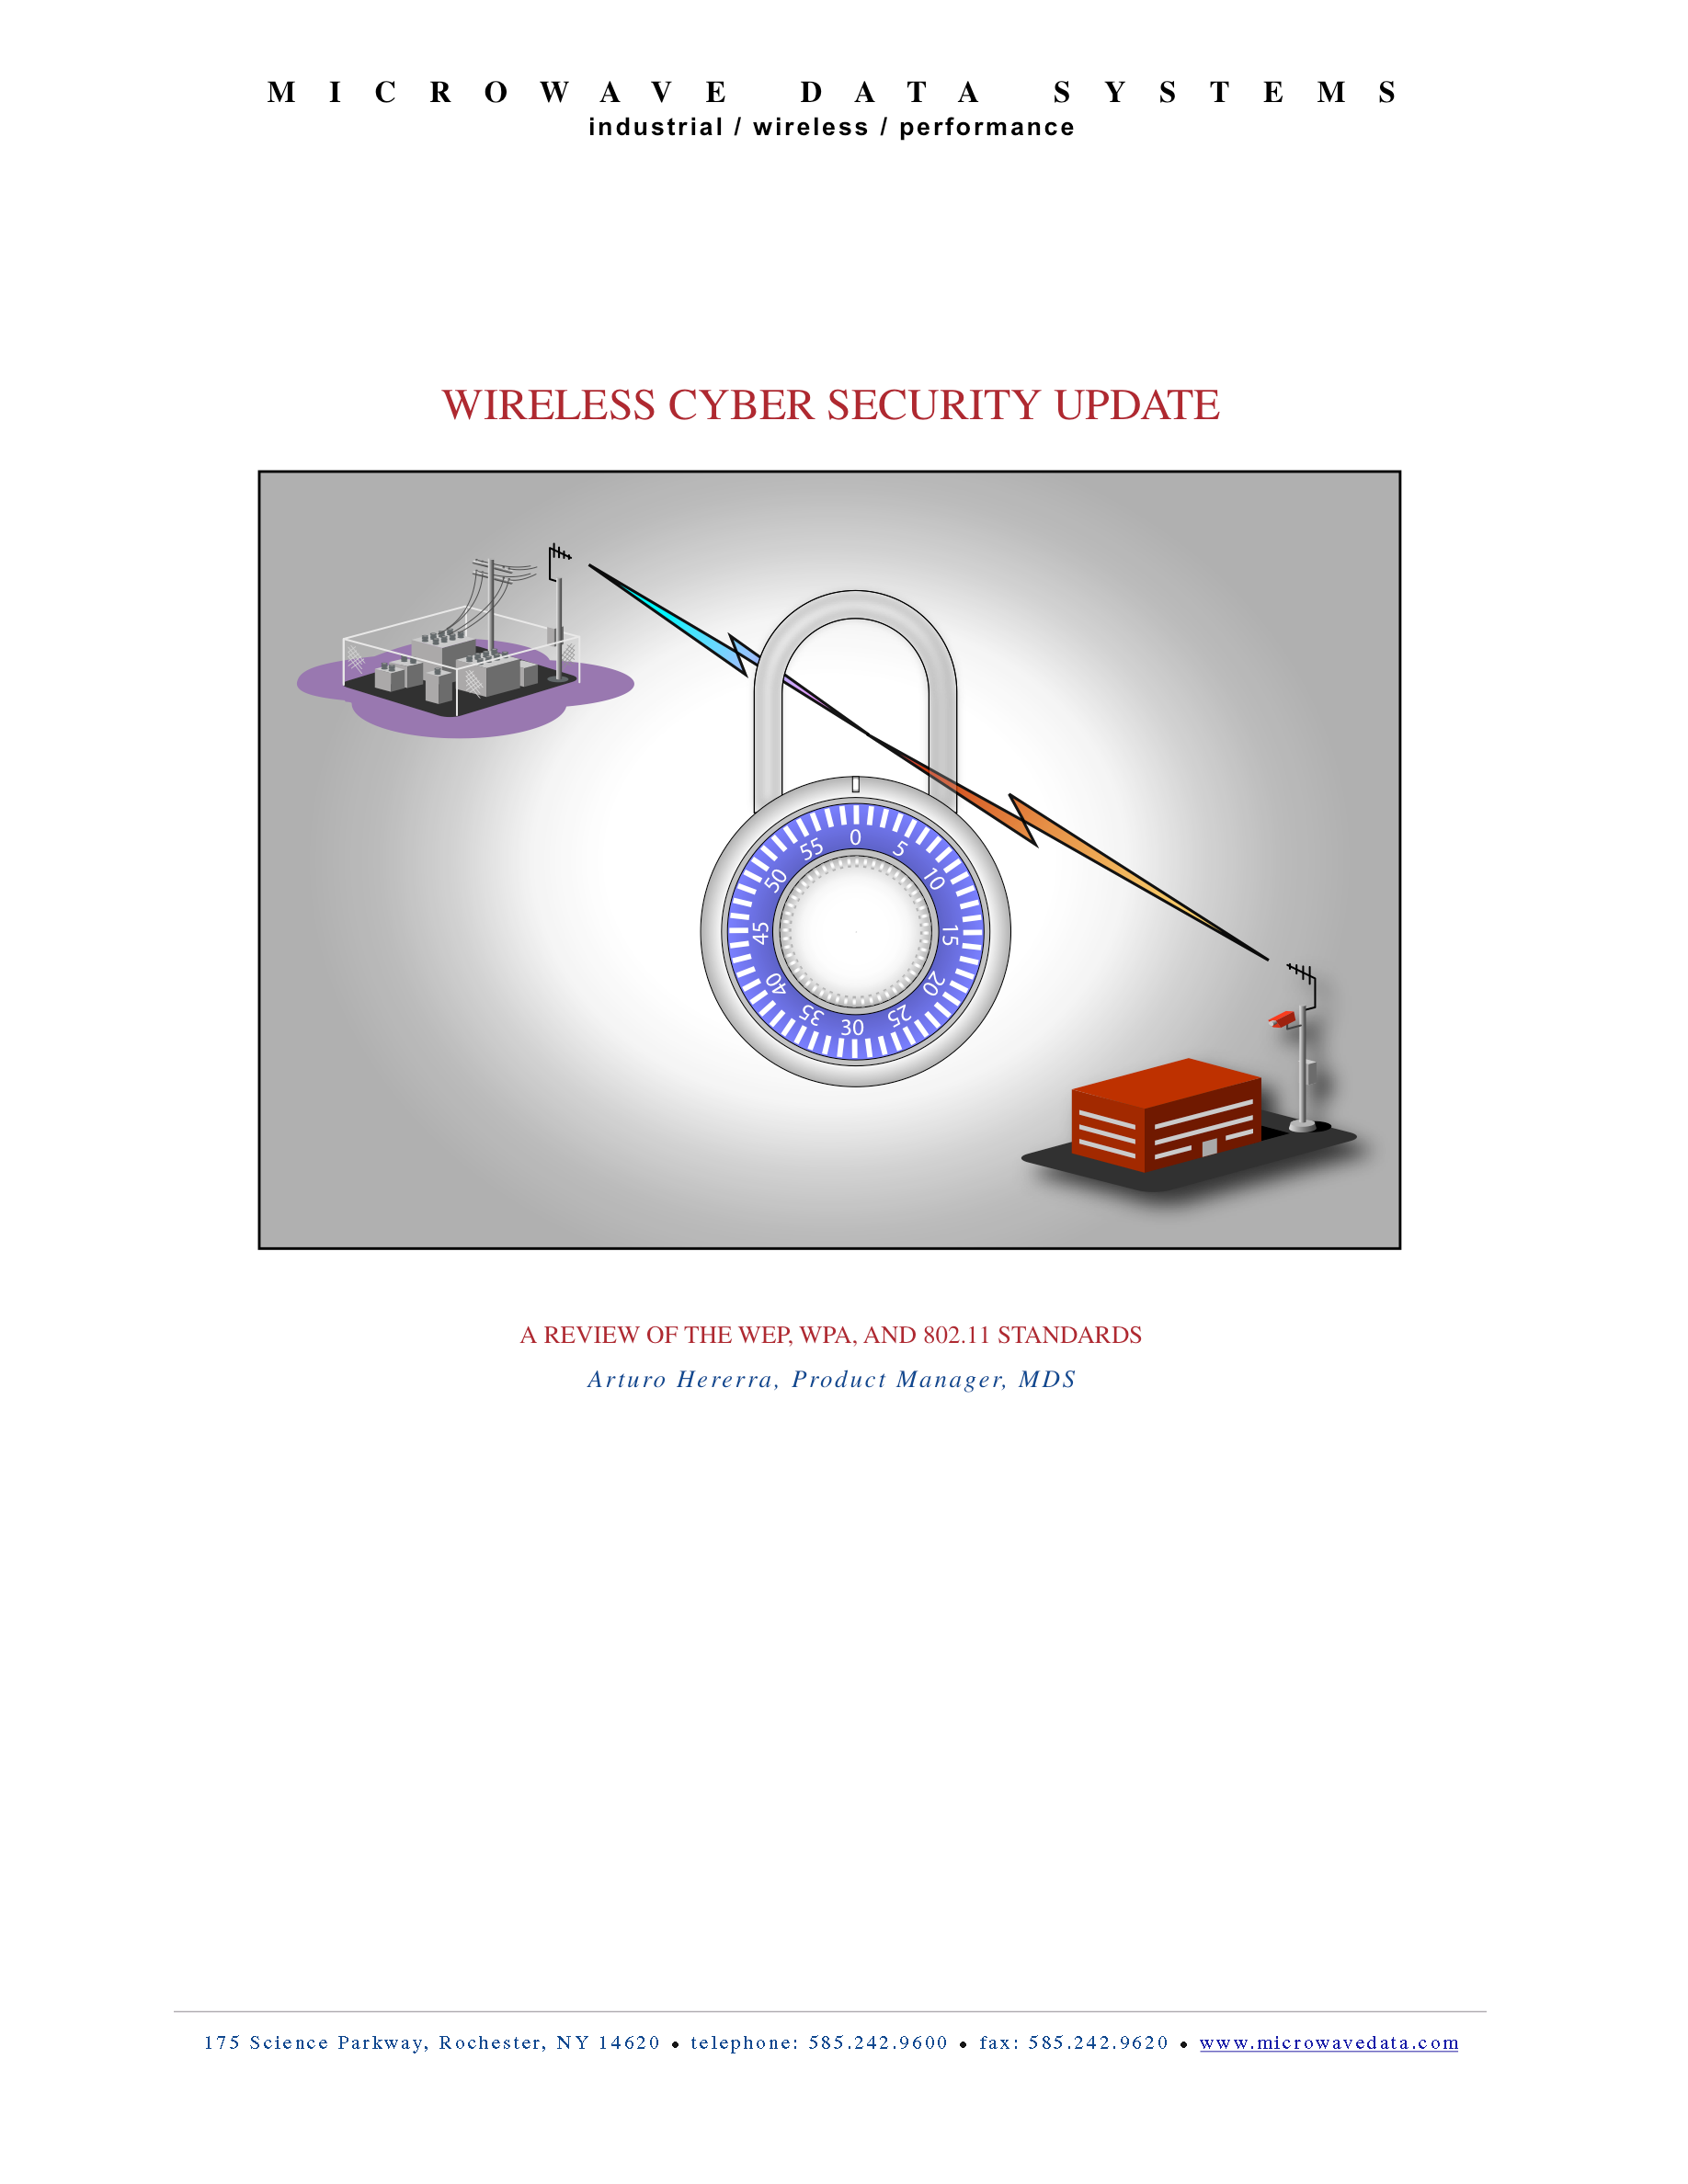 MDSWireless_Cyber_Security_Update_Page_1.png